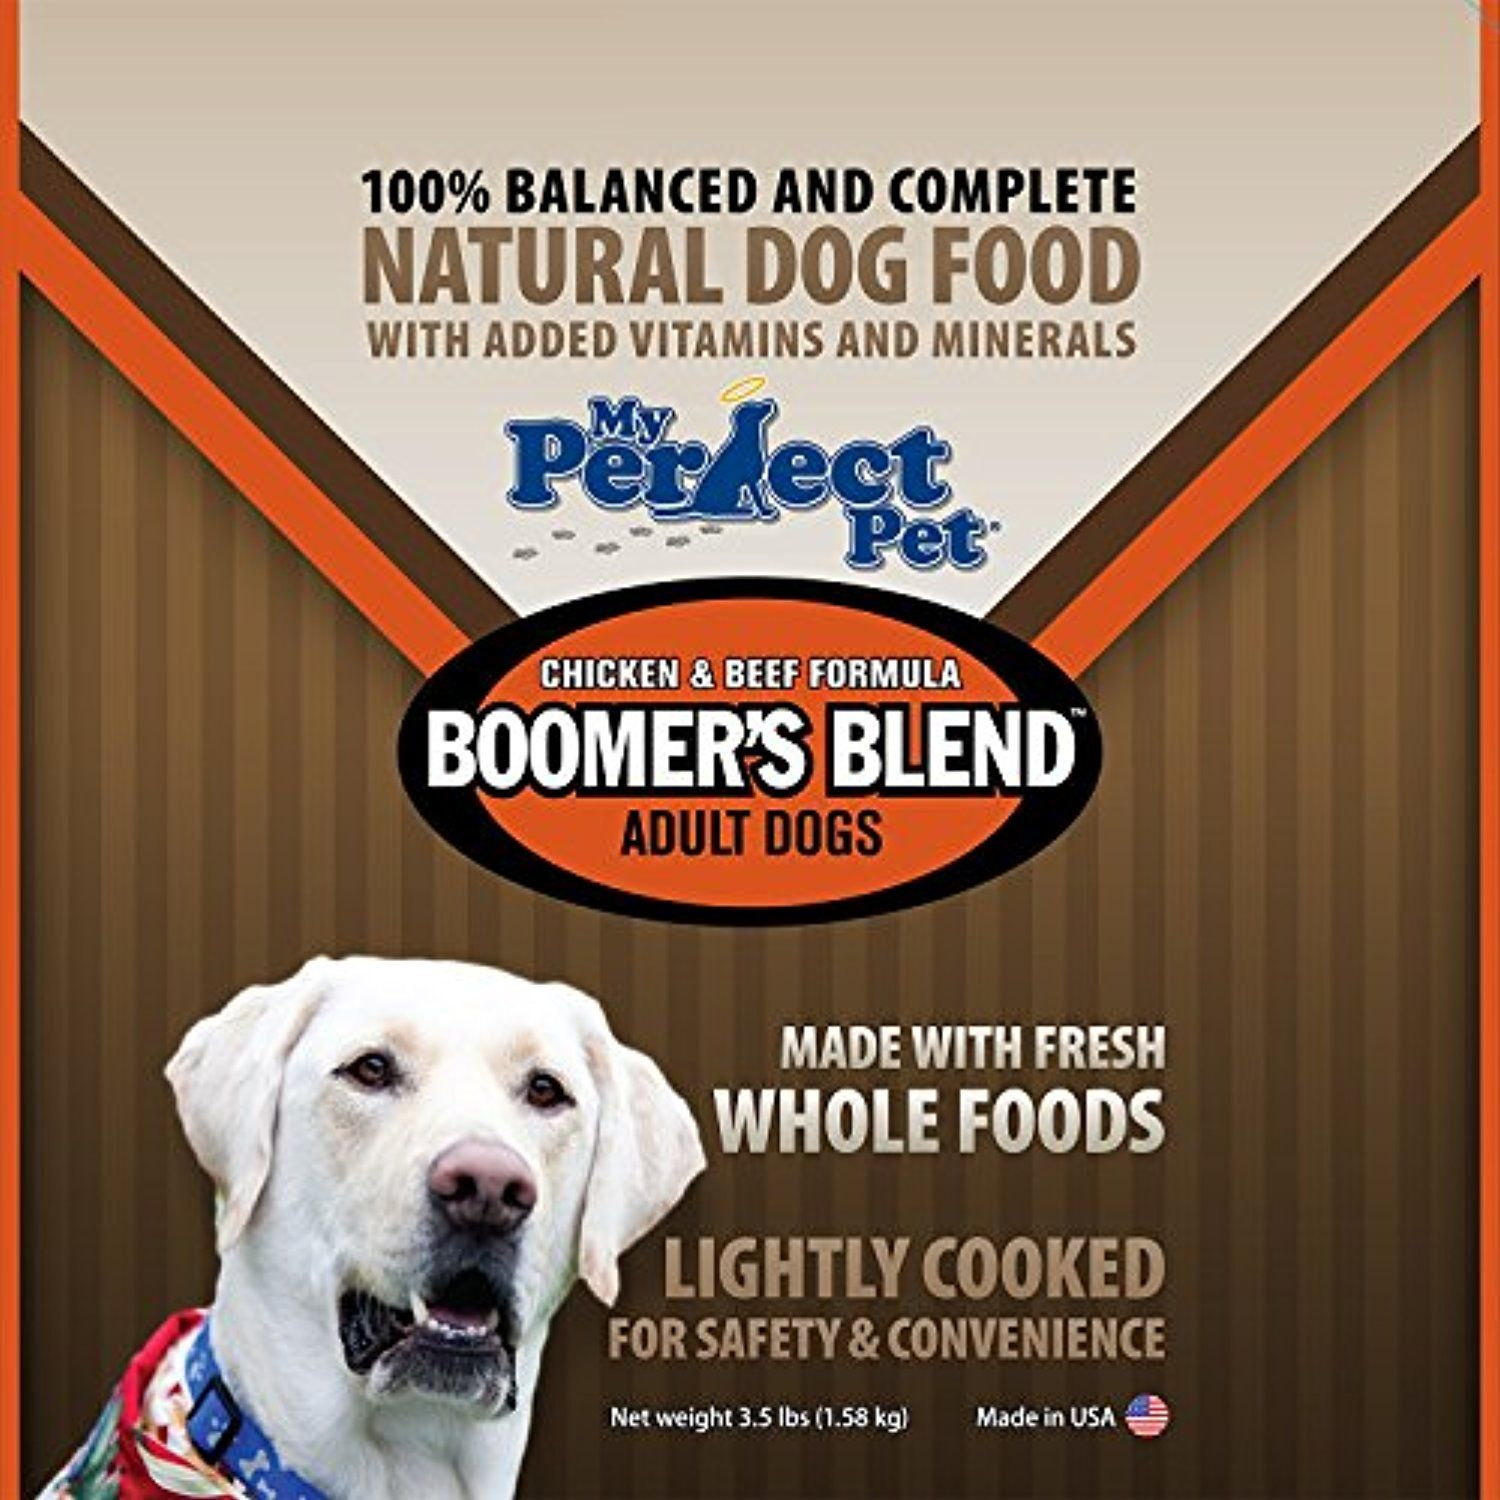 My perfect pet food boomers blend chicken beef formula